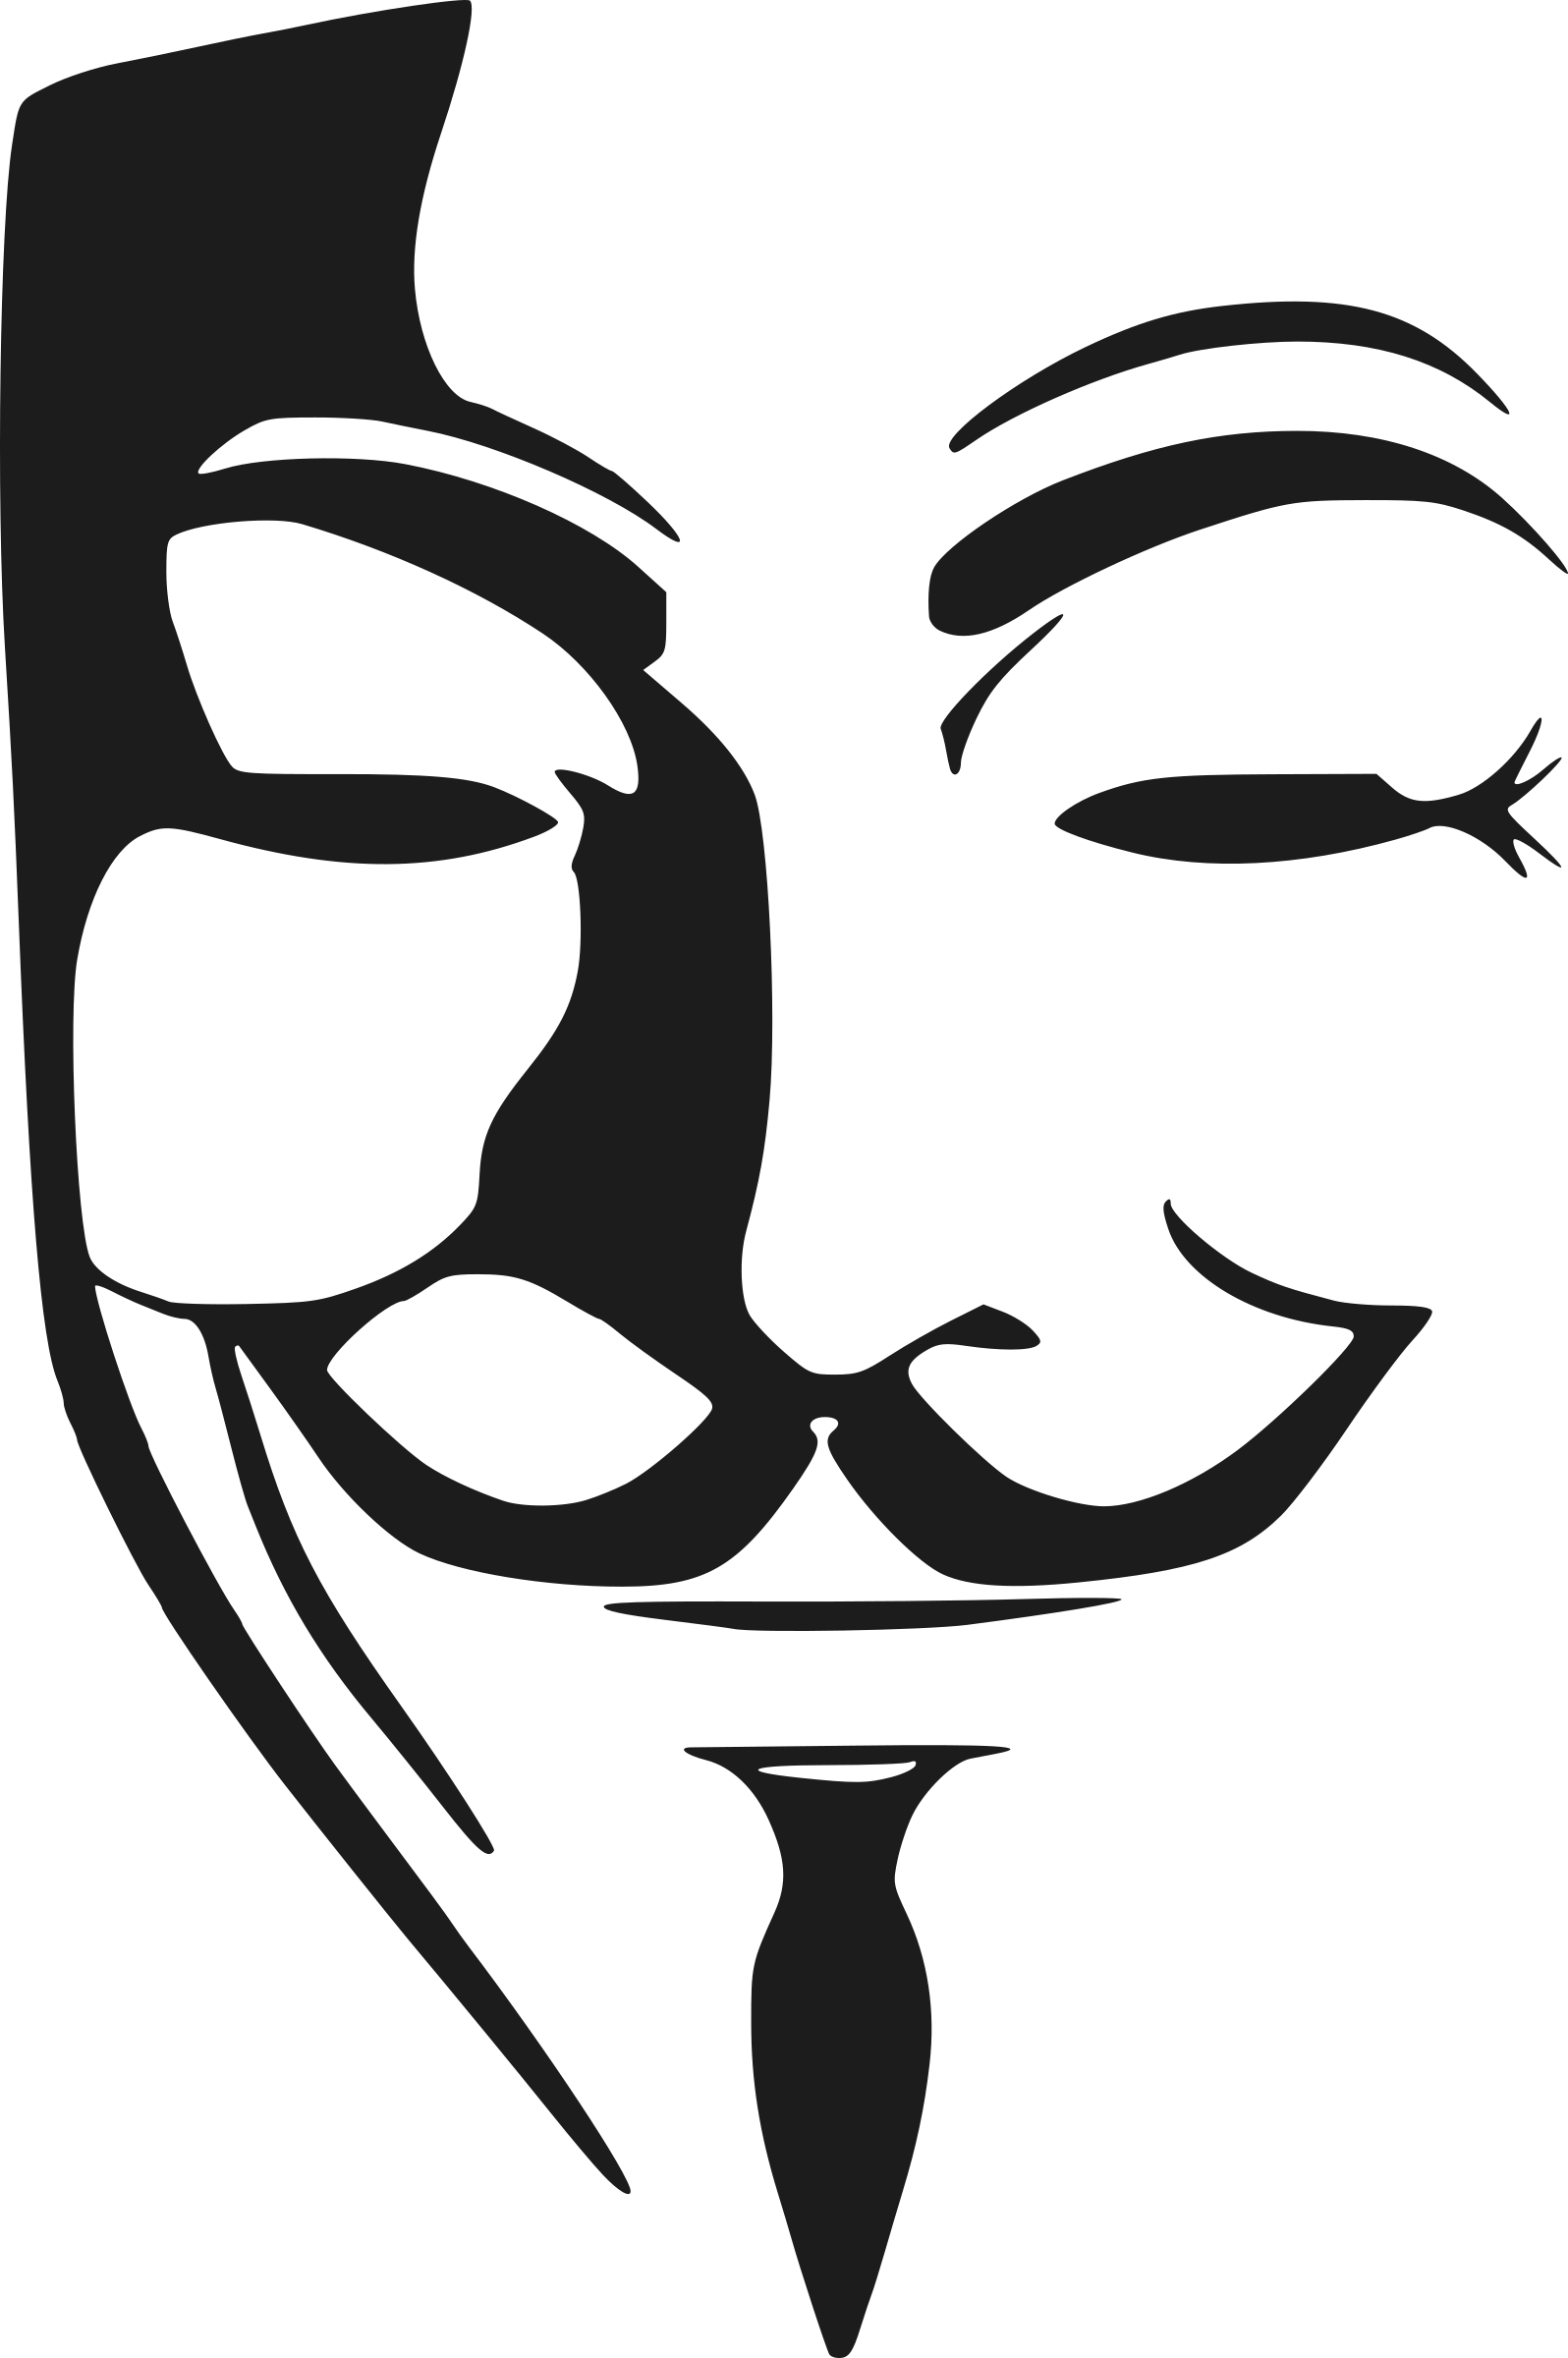 Anonymous png. Clipart mask big image jpg download